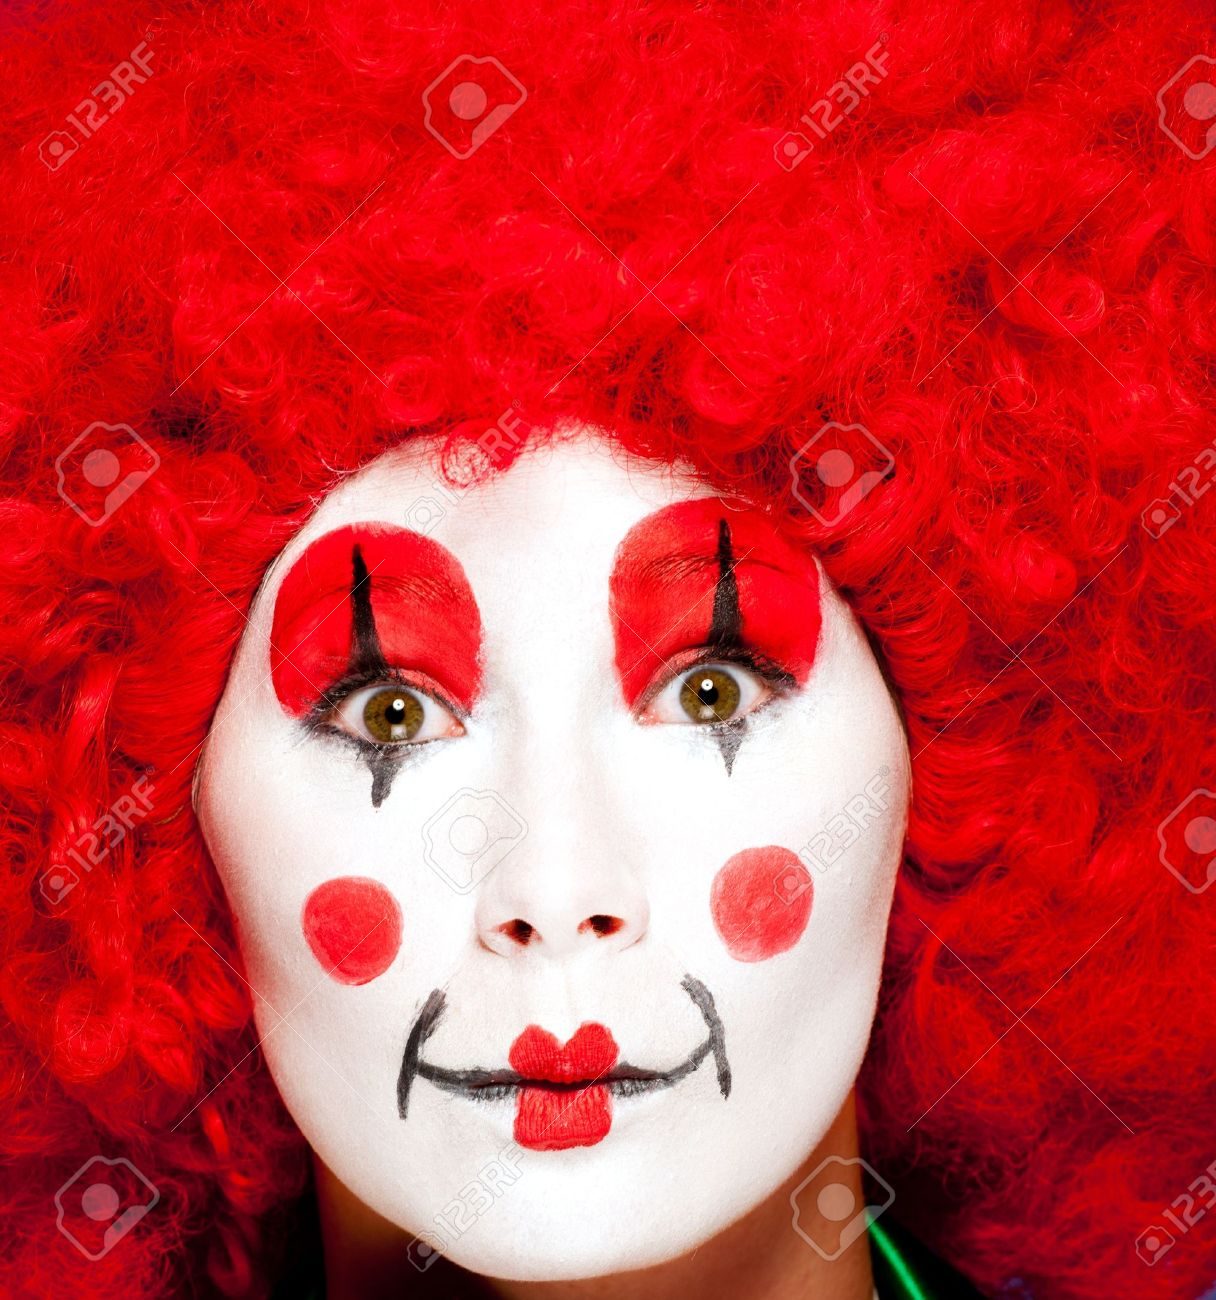 a female clown with colorful clothes and makeup Stock Photo - 11218671